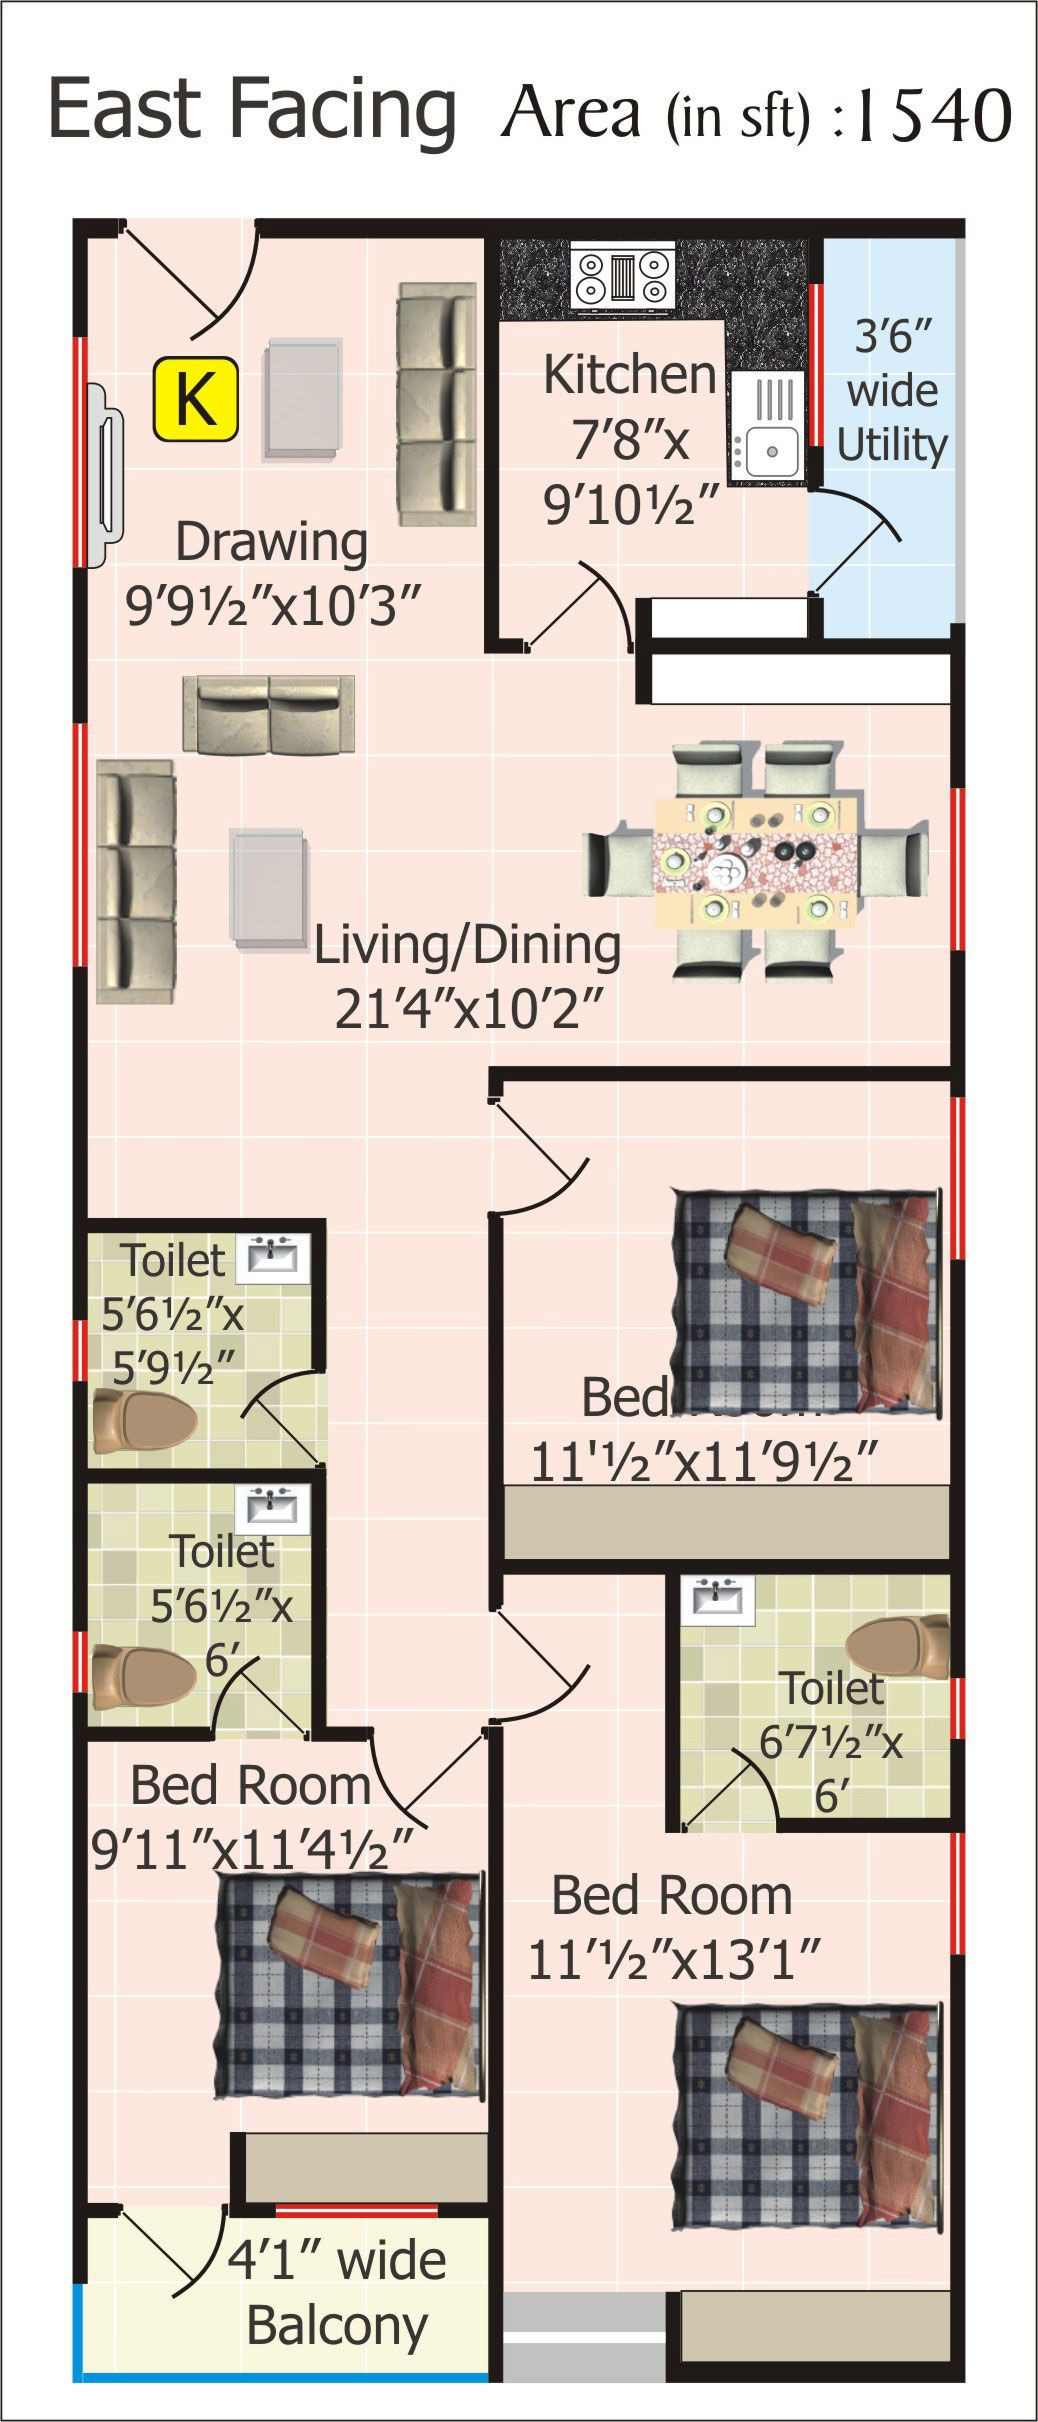 House Plans 3d software Free Download Luxury 1f42 India House Plans software Free Download